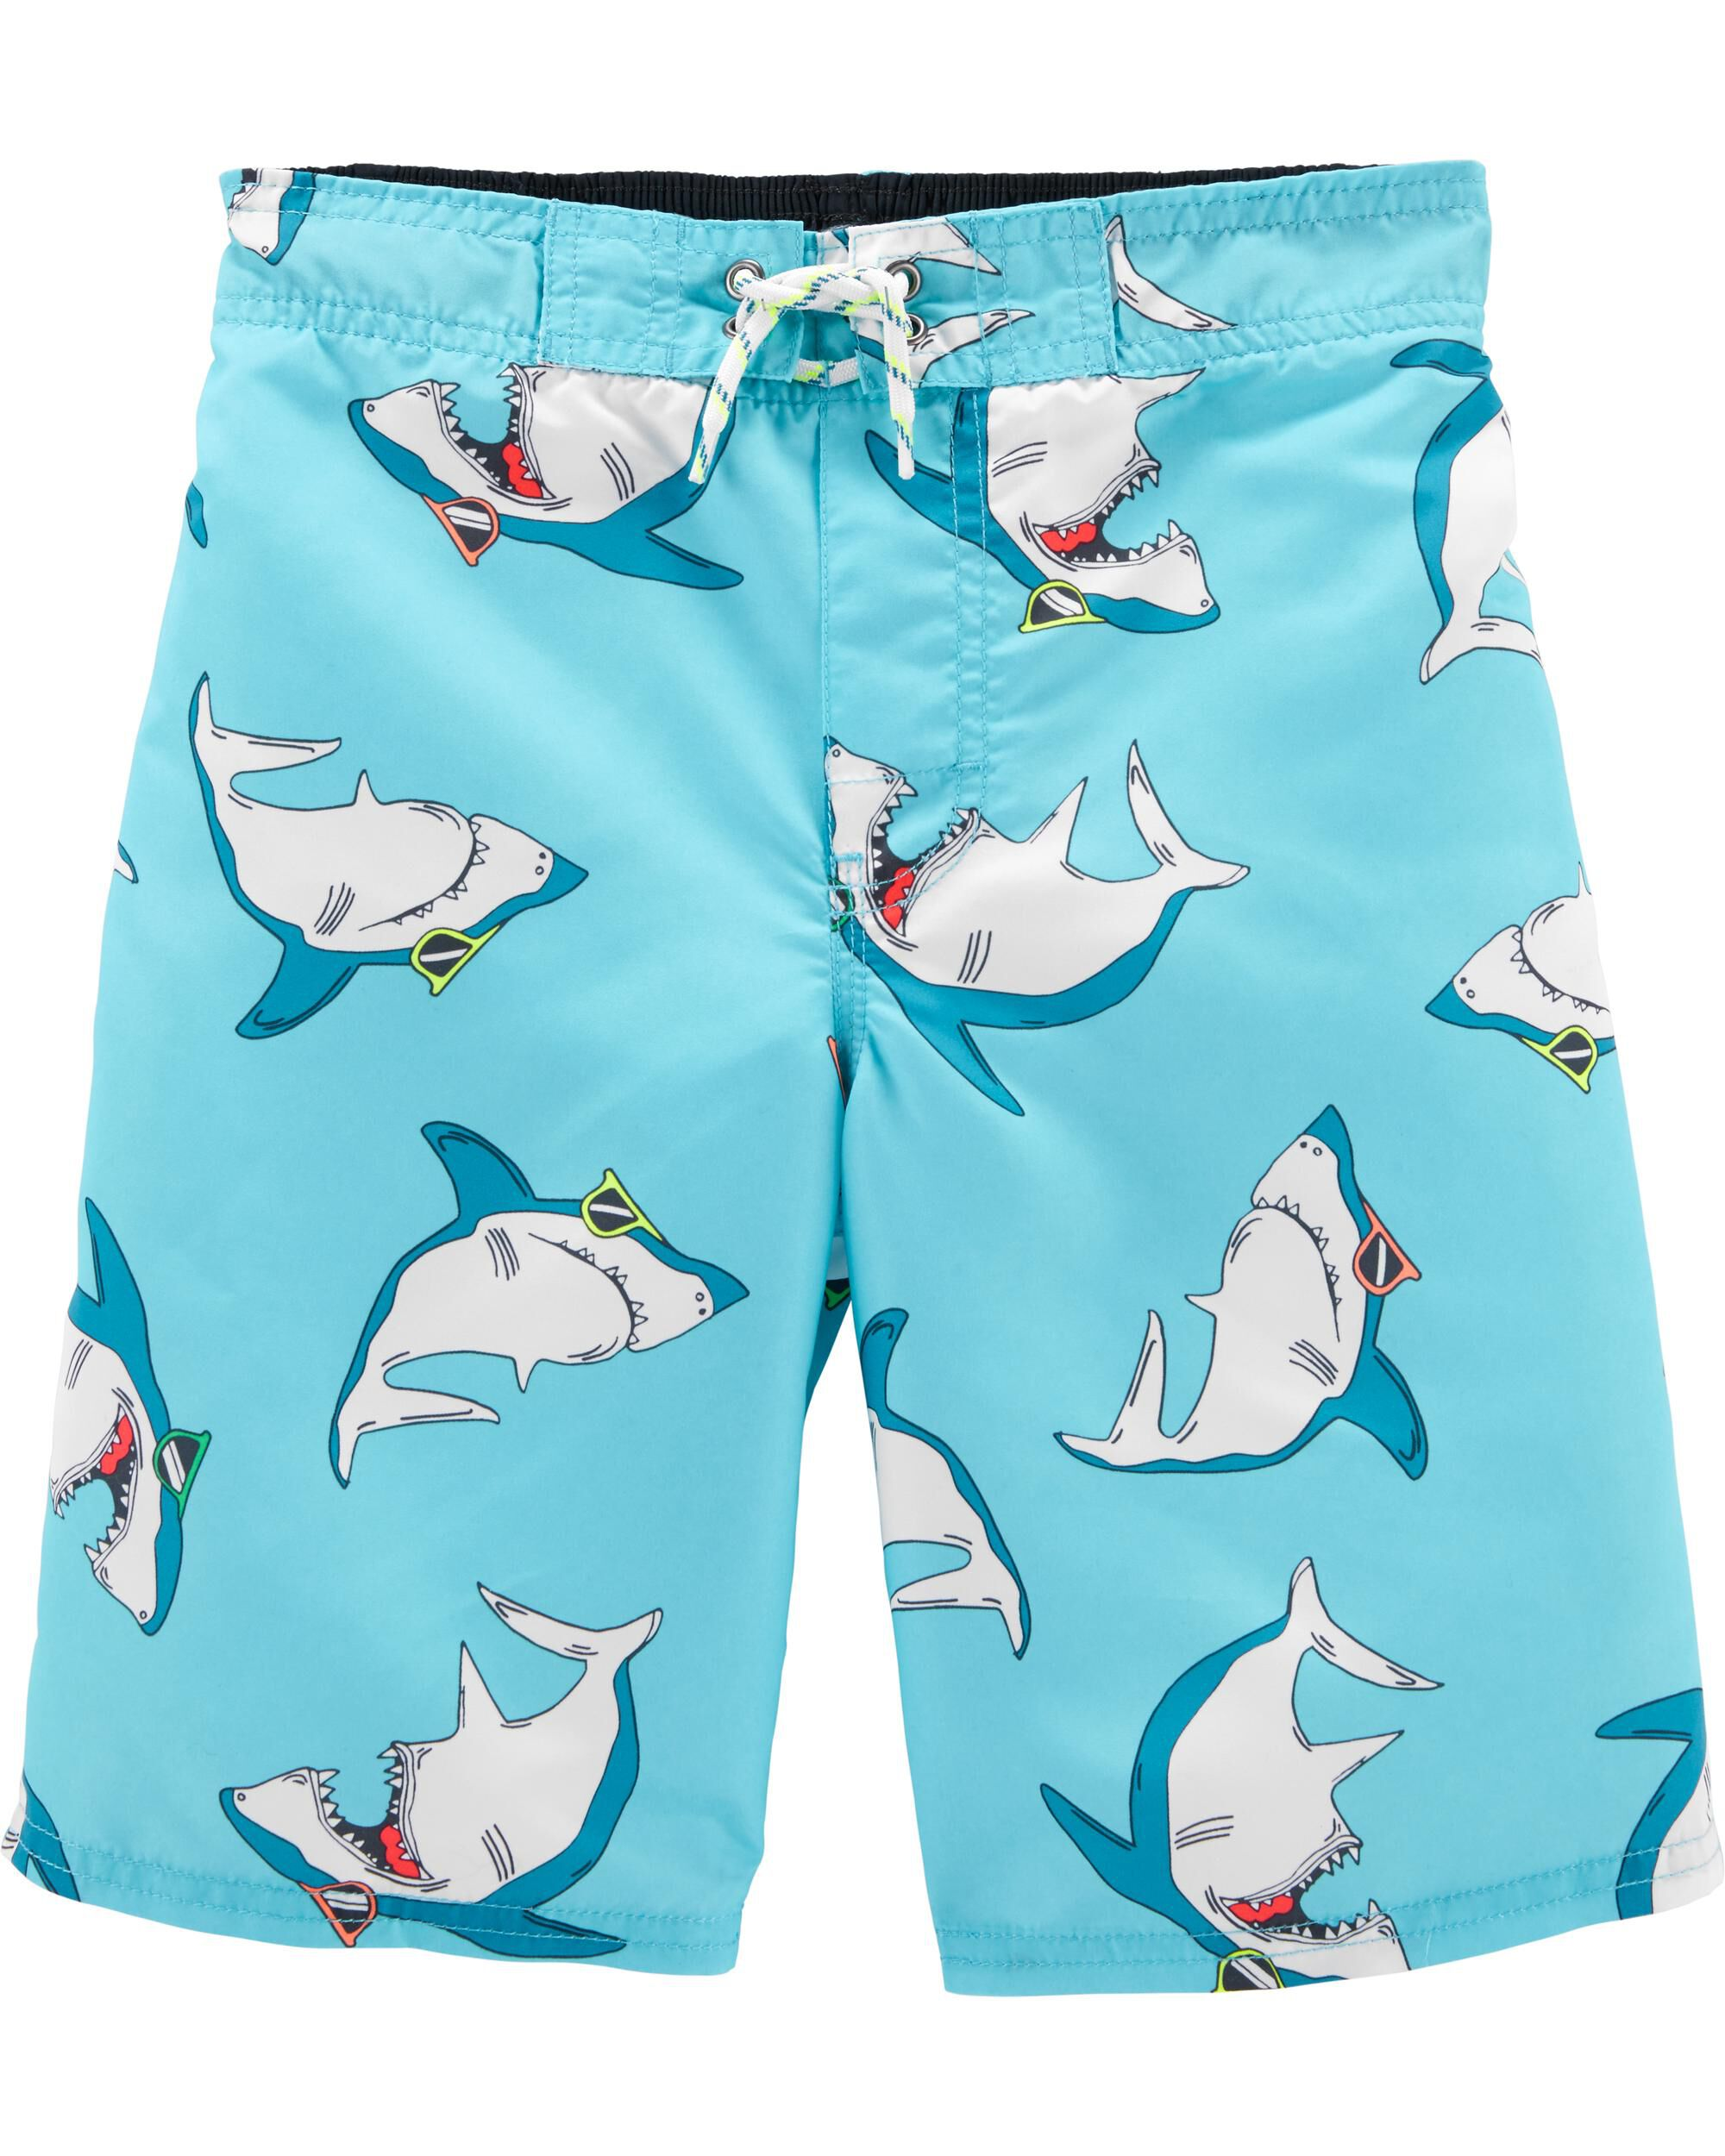 *Clearance*  OshKosh Shark Swim Trunks